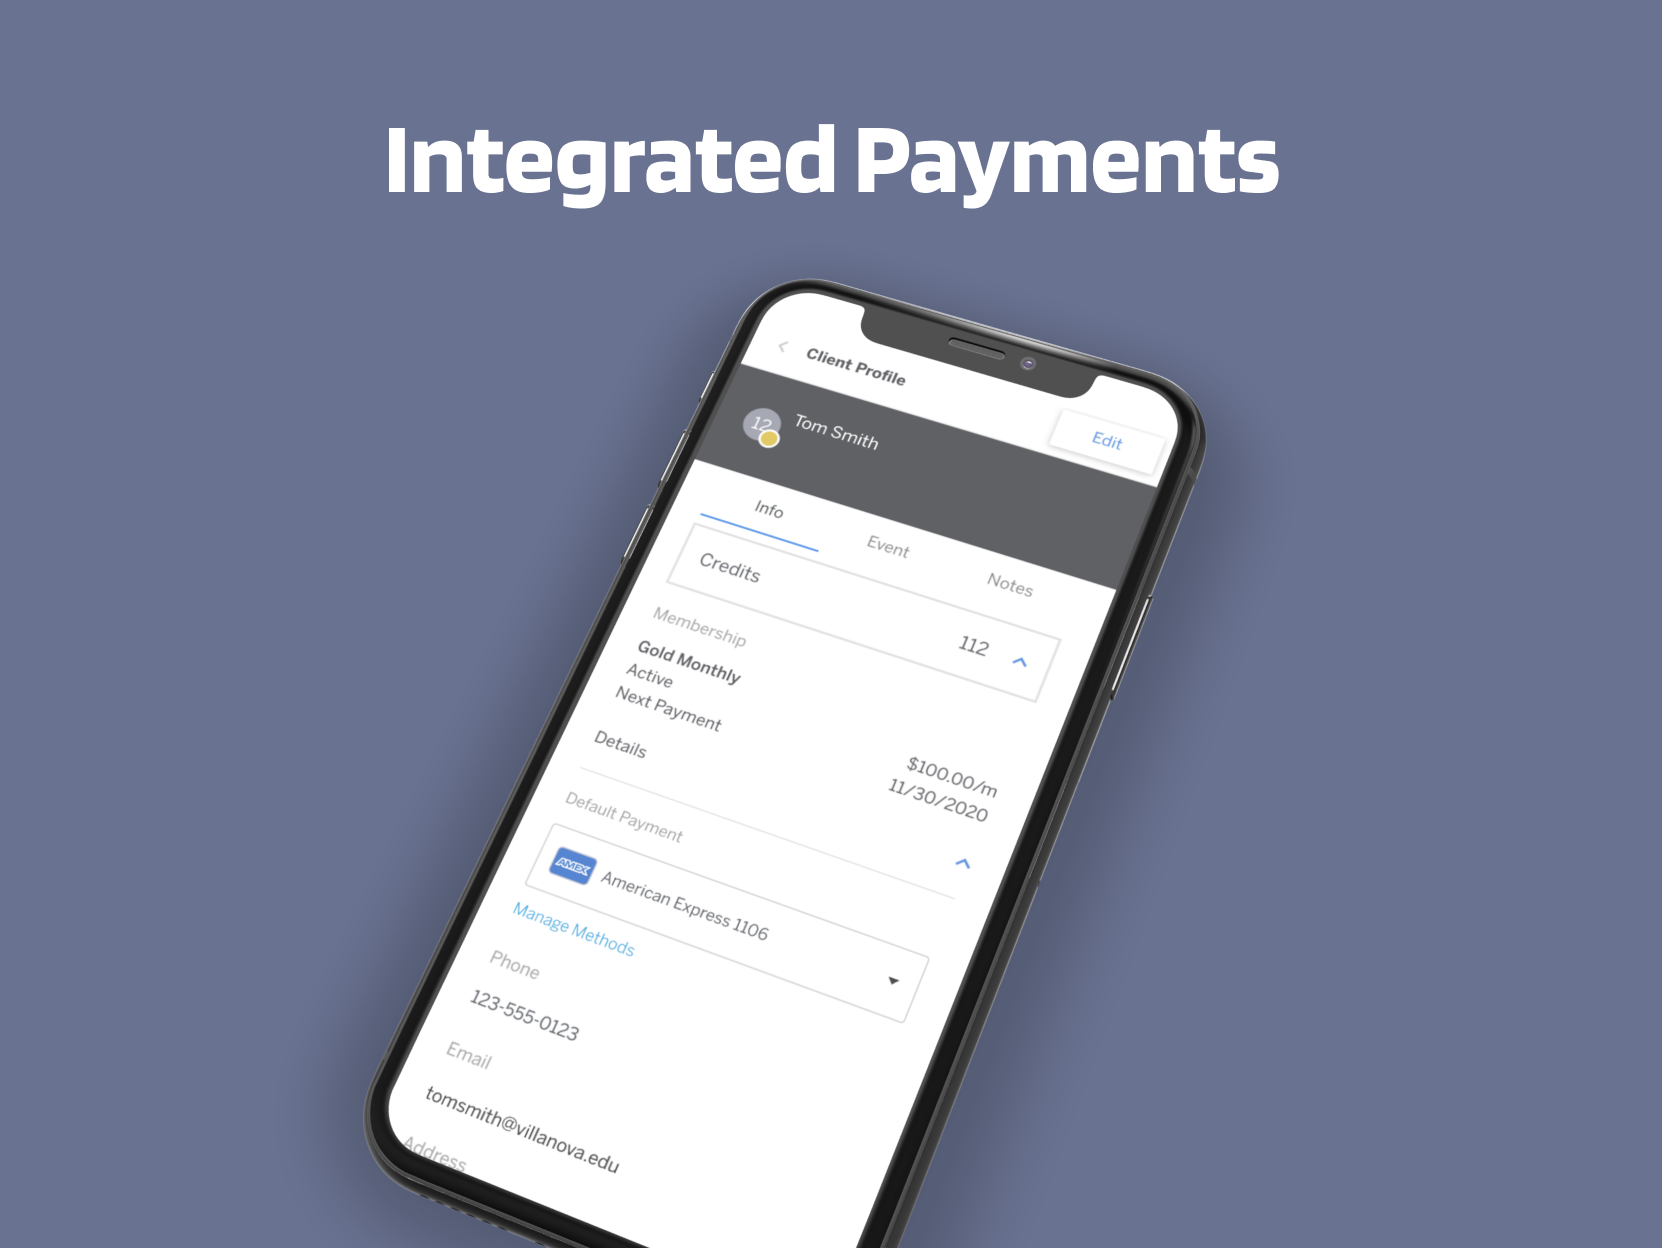 Integrated software & payments platform eliminates need to aggregate data from multiple costly sources. Take quicker action on outstanding balances with integrated payment tools.